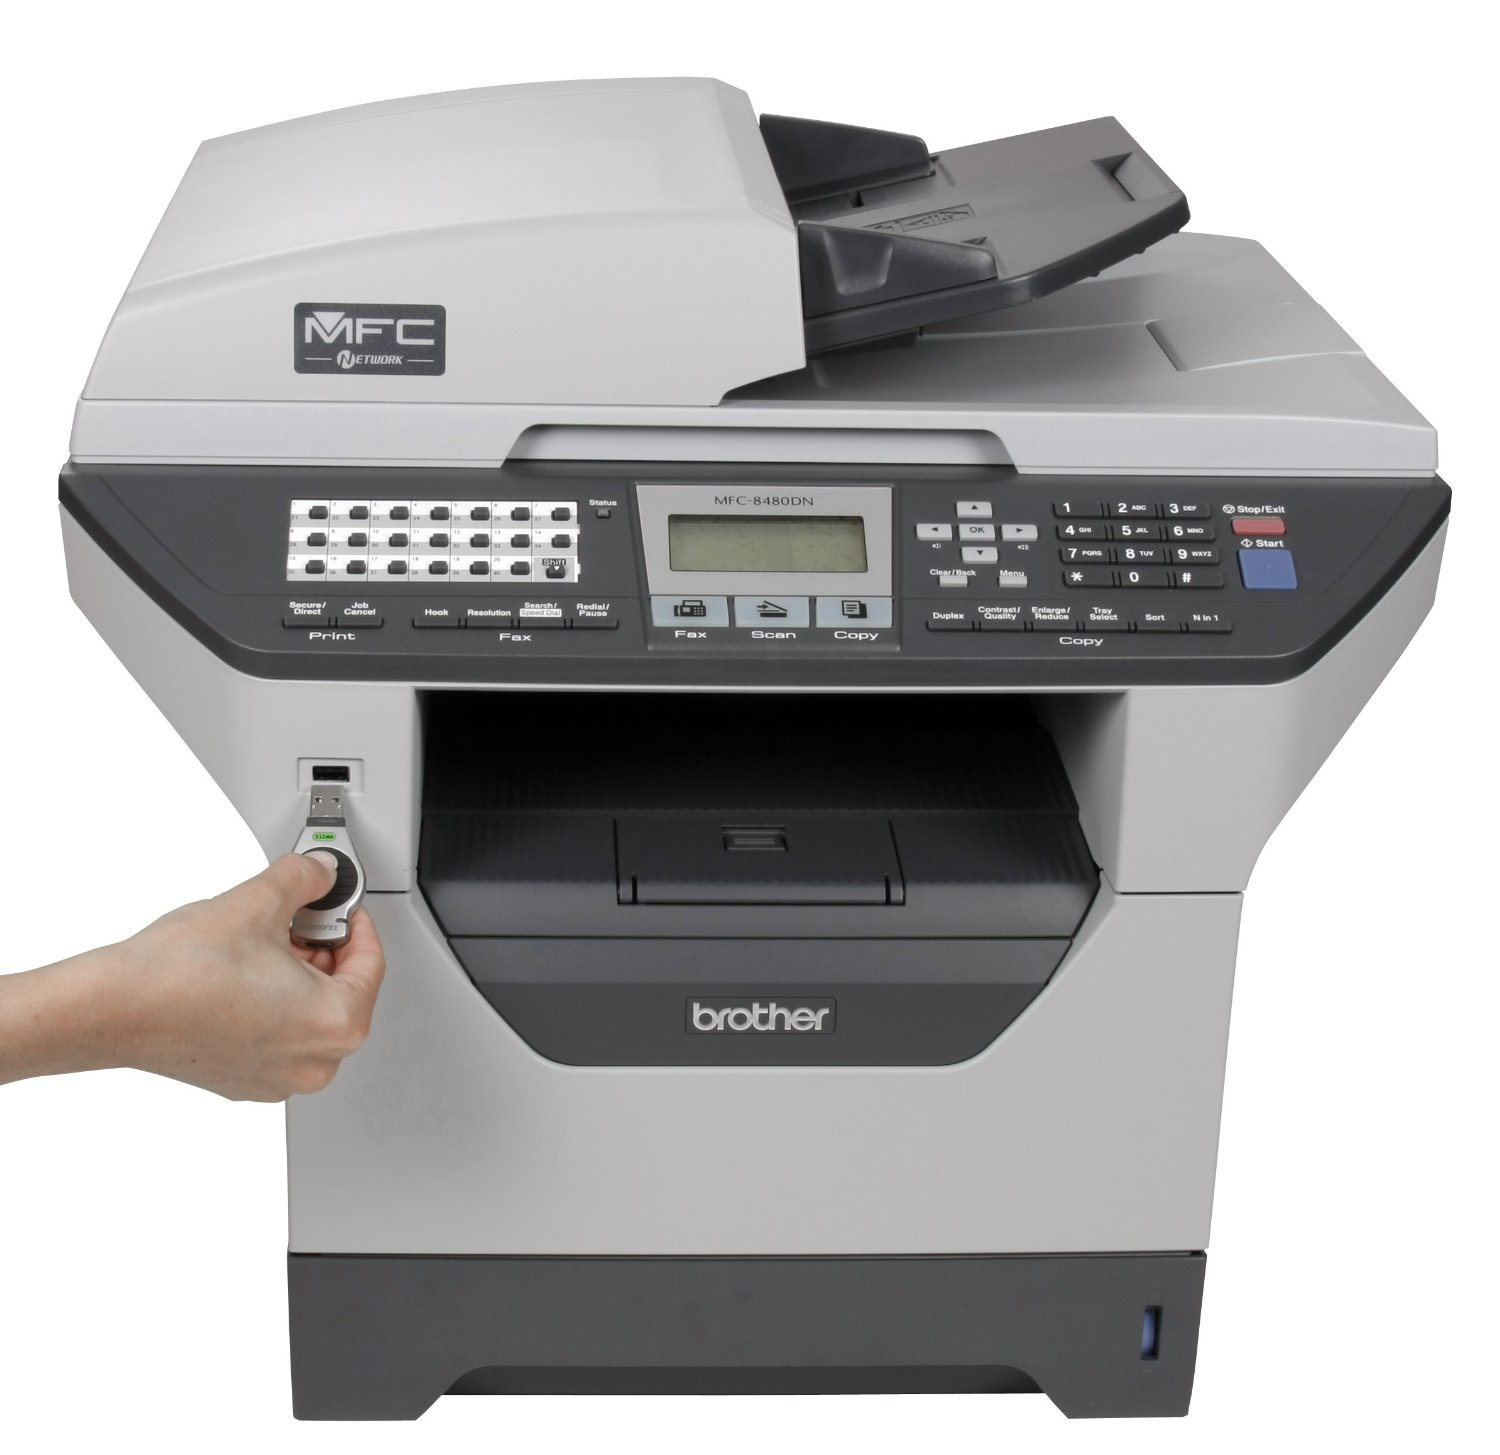 Brother Printer Drivers For Mfc 8480dn